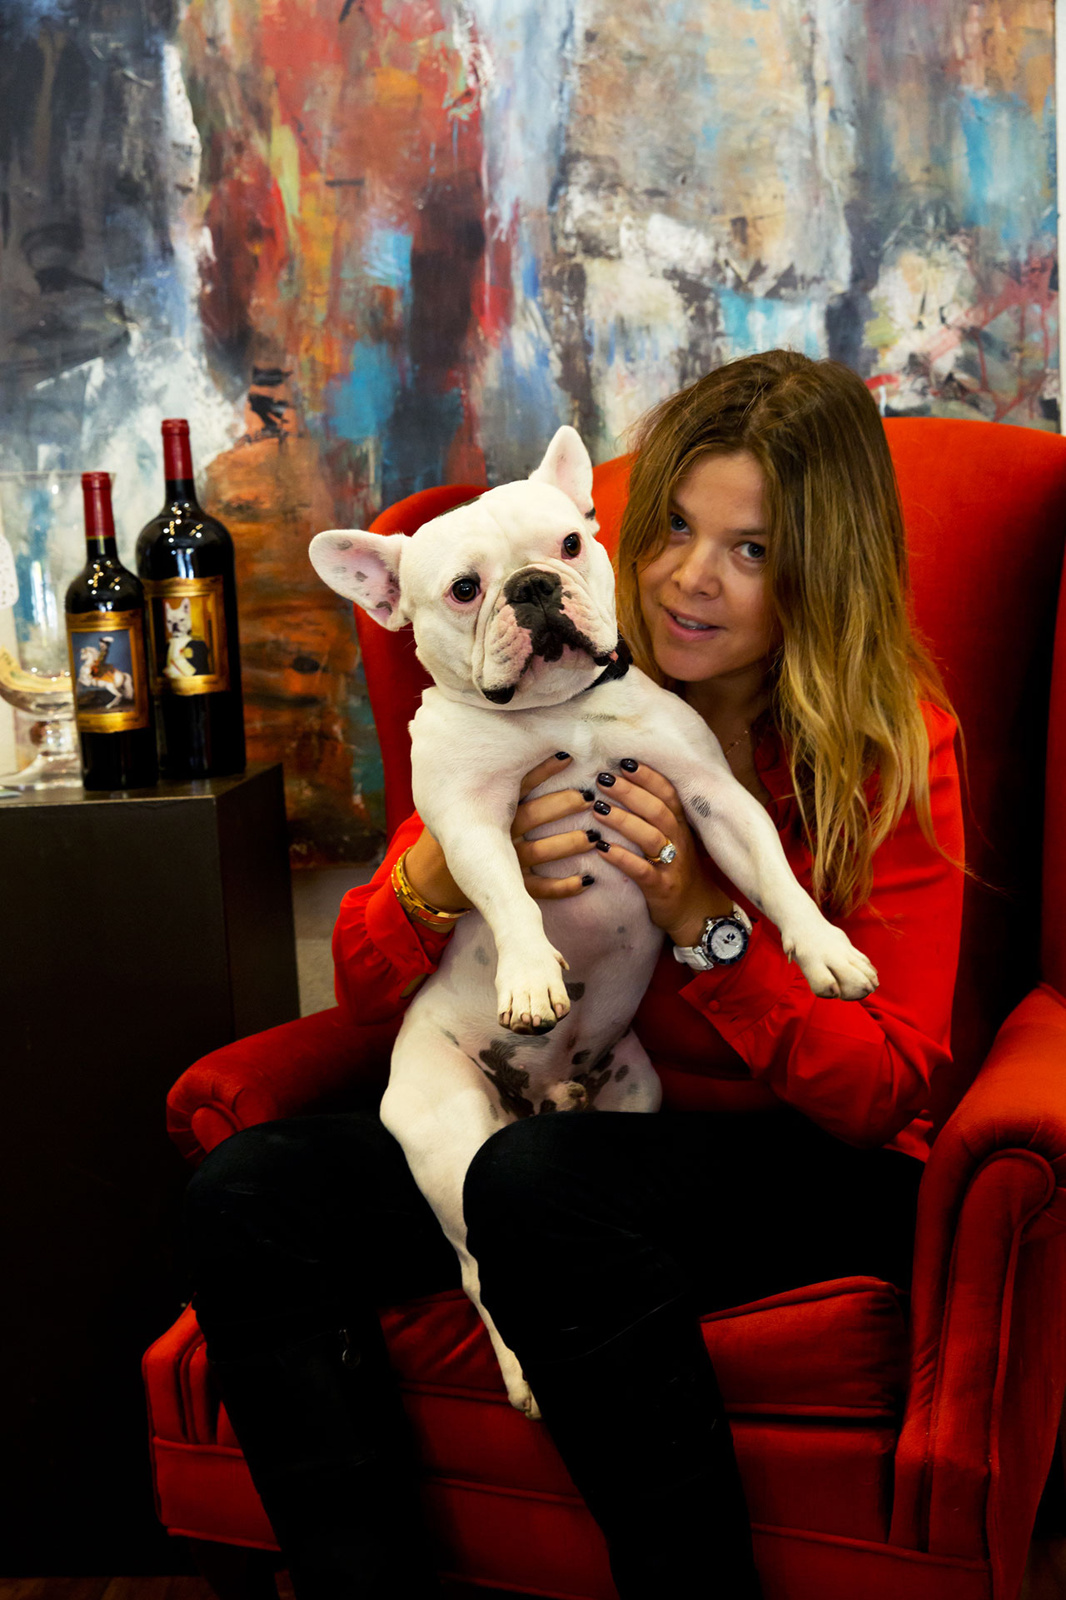 Woman holding up Frenchie dog with 2 wine bottles close by